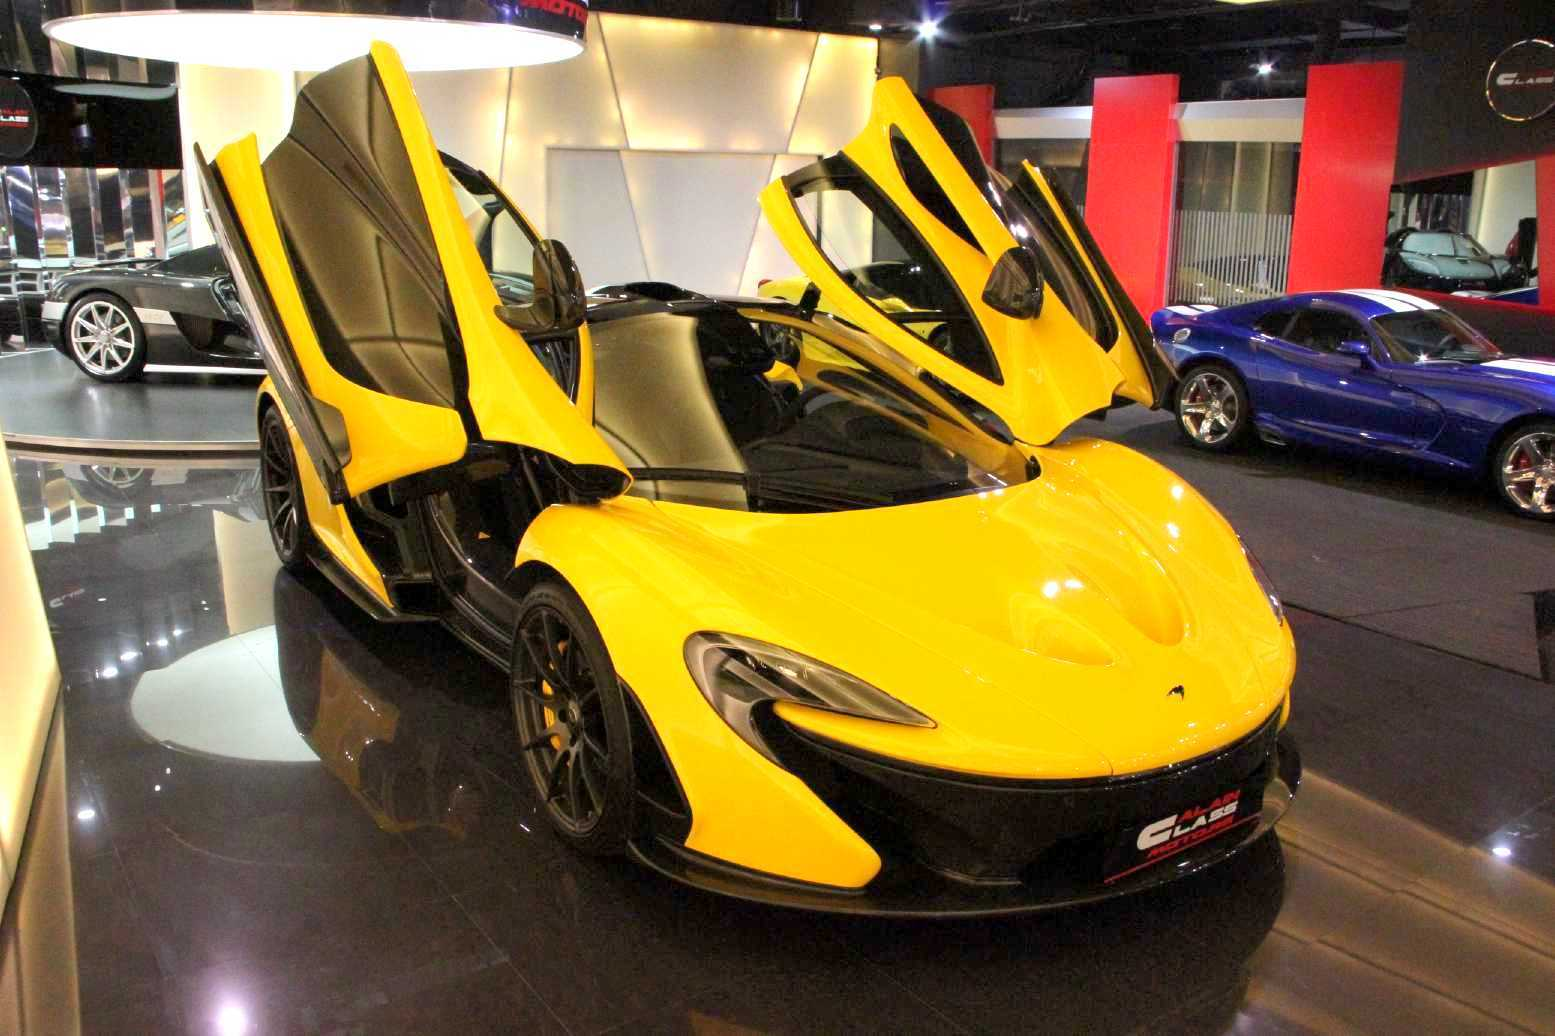 Cheap Cars For Sale >> McLaren P1 For Sale In Dubai For $2 Million | Top Speed